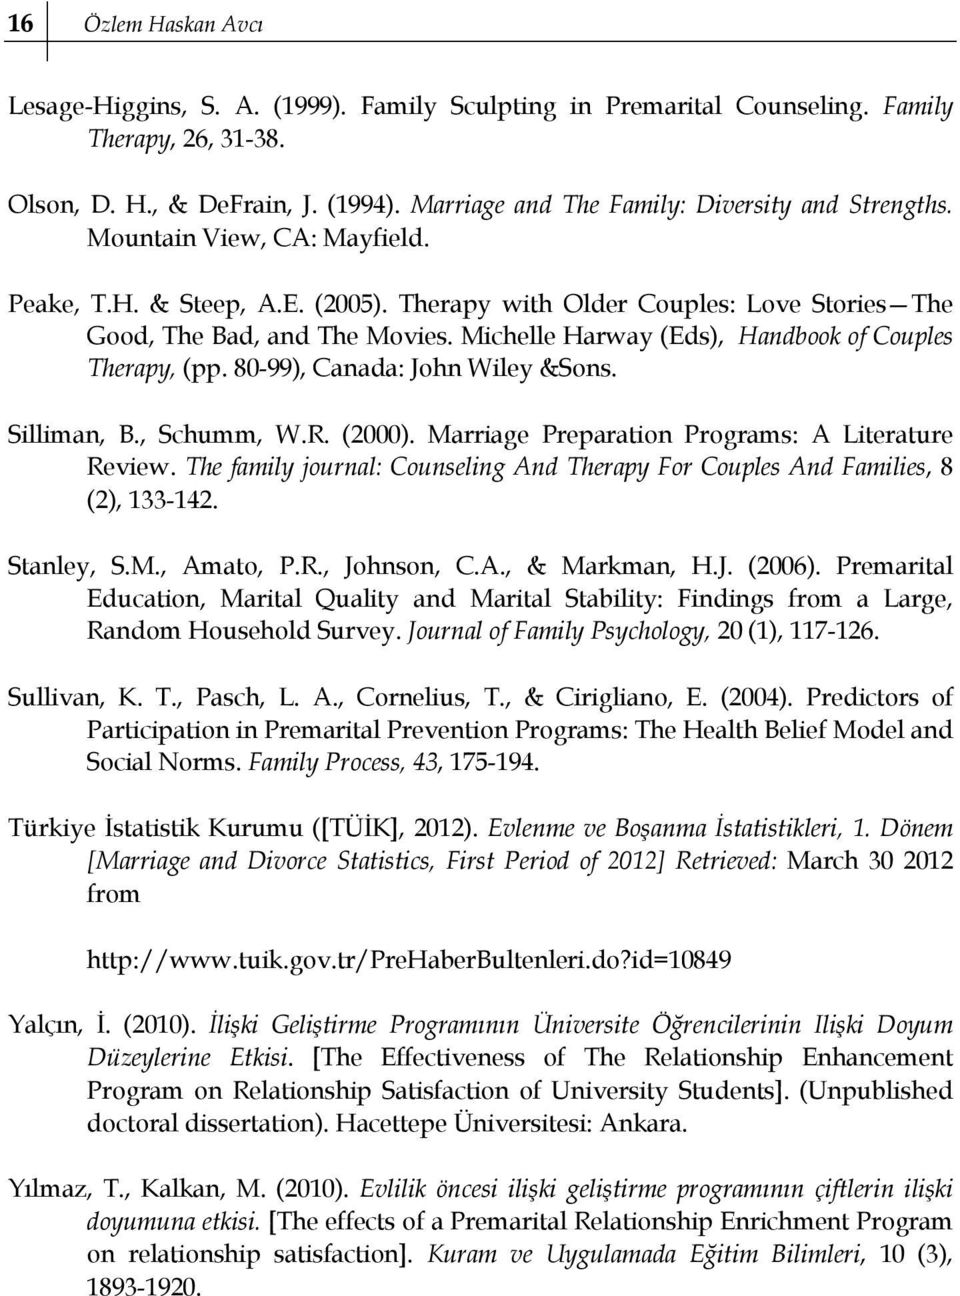 0-), Canada: John Wiley &Sons. Silliman, B., Schumm, W.R. (00). Marriage Preparation Programs: A Literature Review. The family journal: Counseling And Therapy For Couples And Families, (2), 3-.